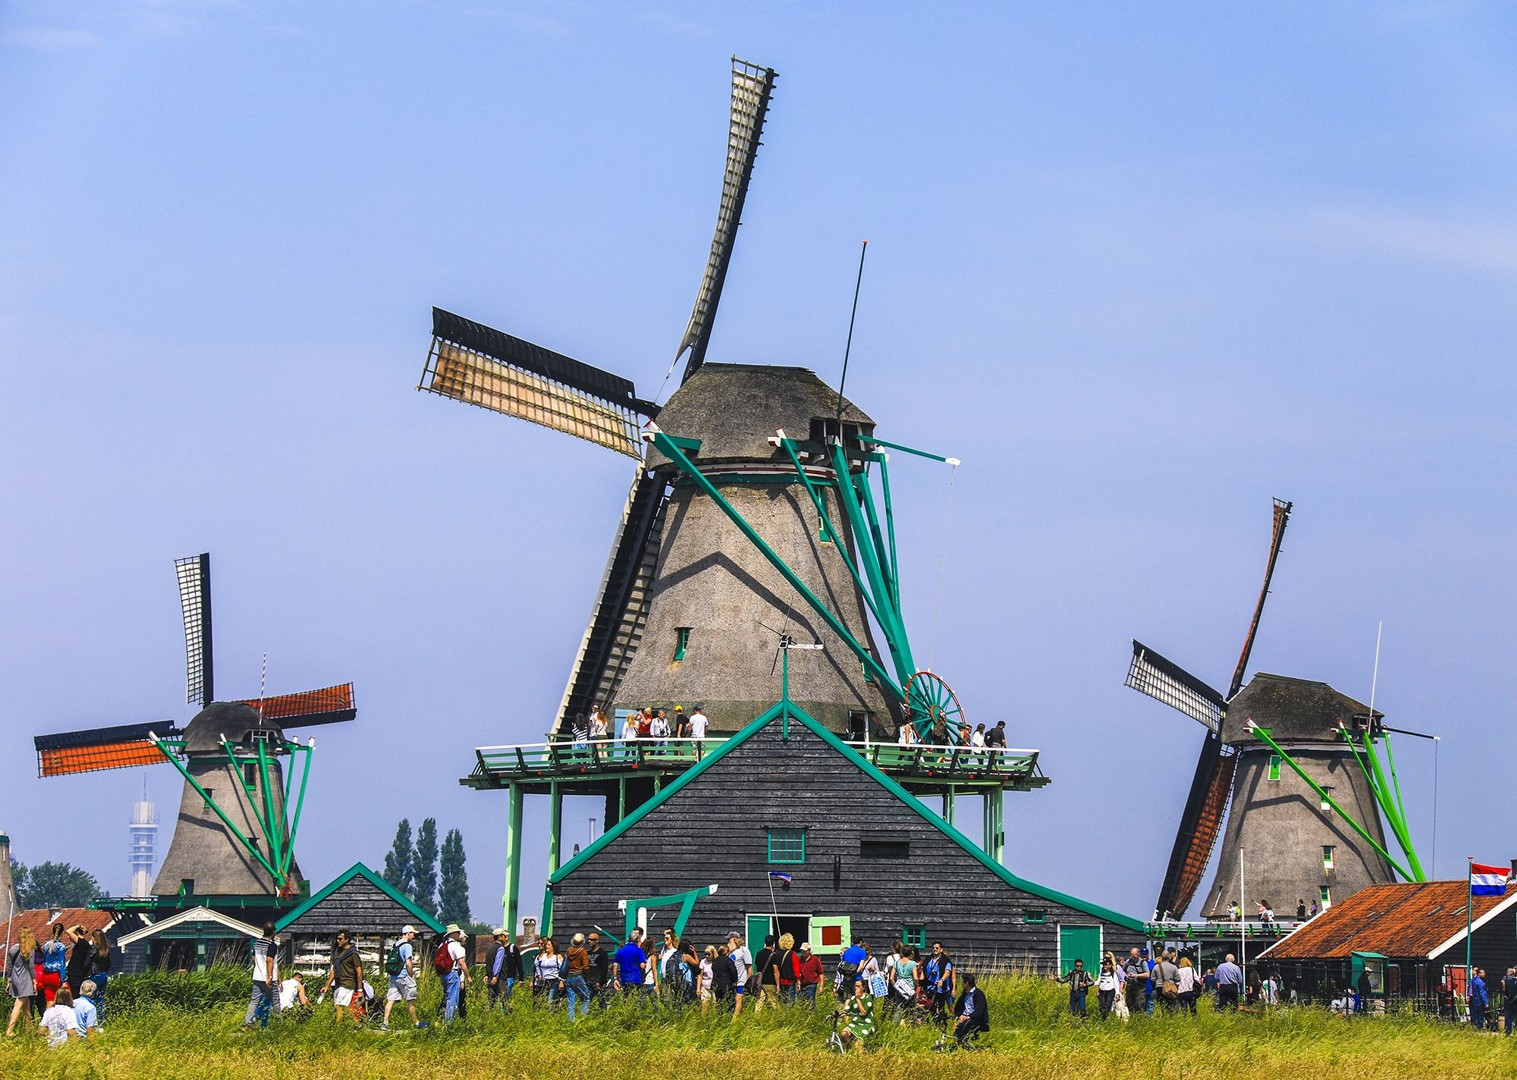 zaanse-schans-zaandam-holland-amsterdam-windmills-bike-and-barge.jpg - Holland and Belgium - Bruges to Amsterdam - Bike and Barge Holiday - Leisure Cycling